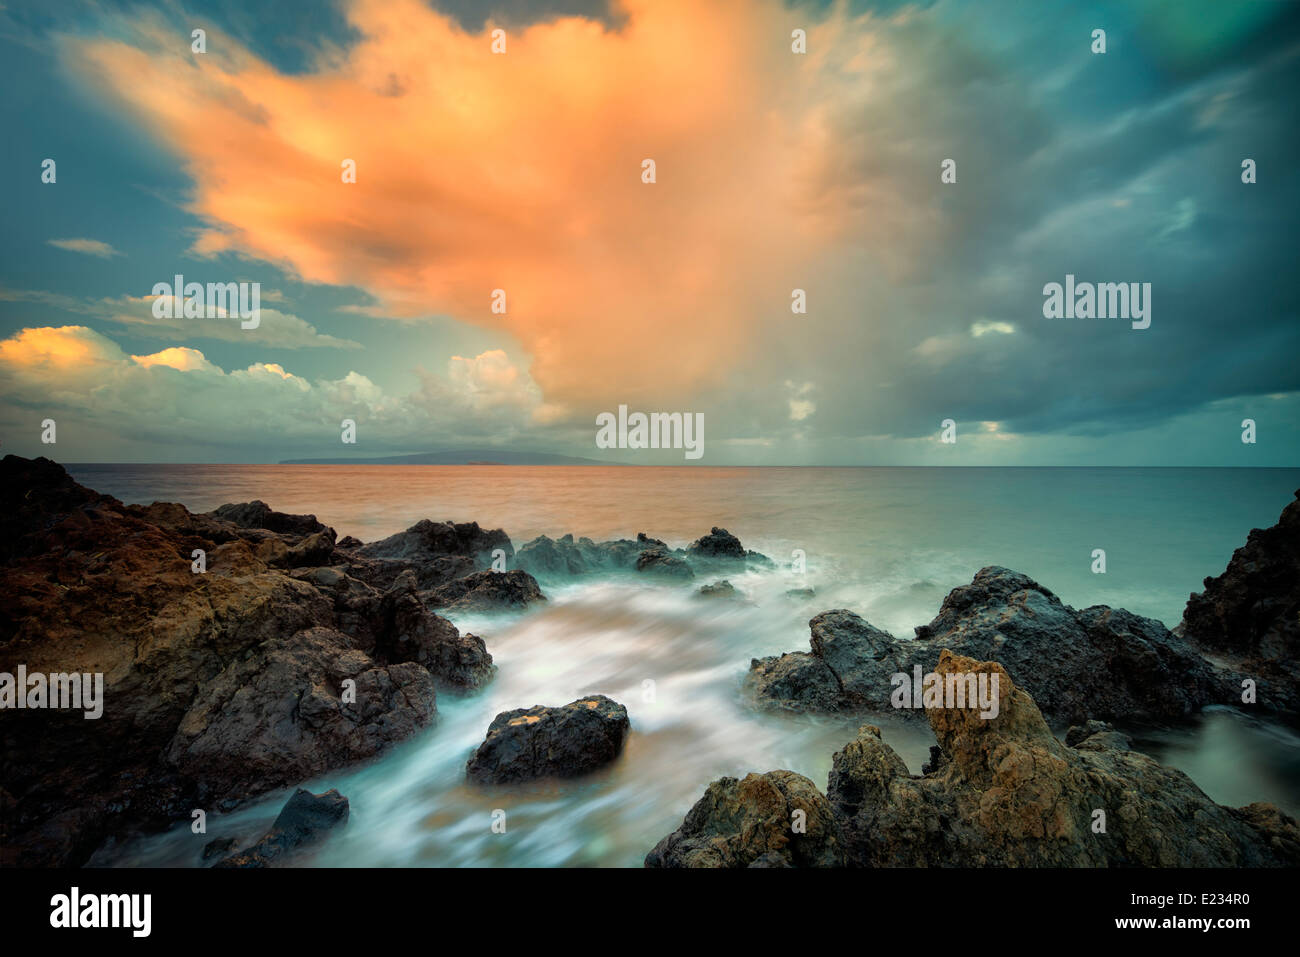 Sunrise und Wolken am felsigen Strand. Maui, Hawaii Stockbild